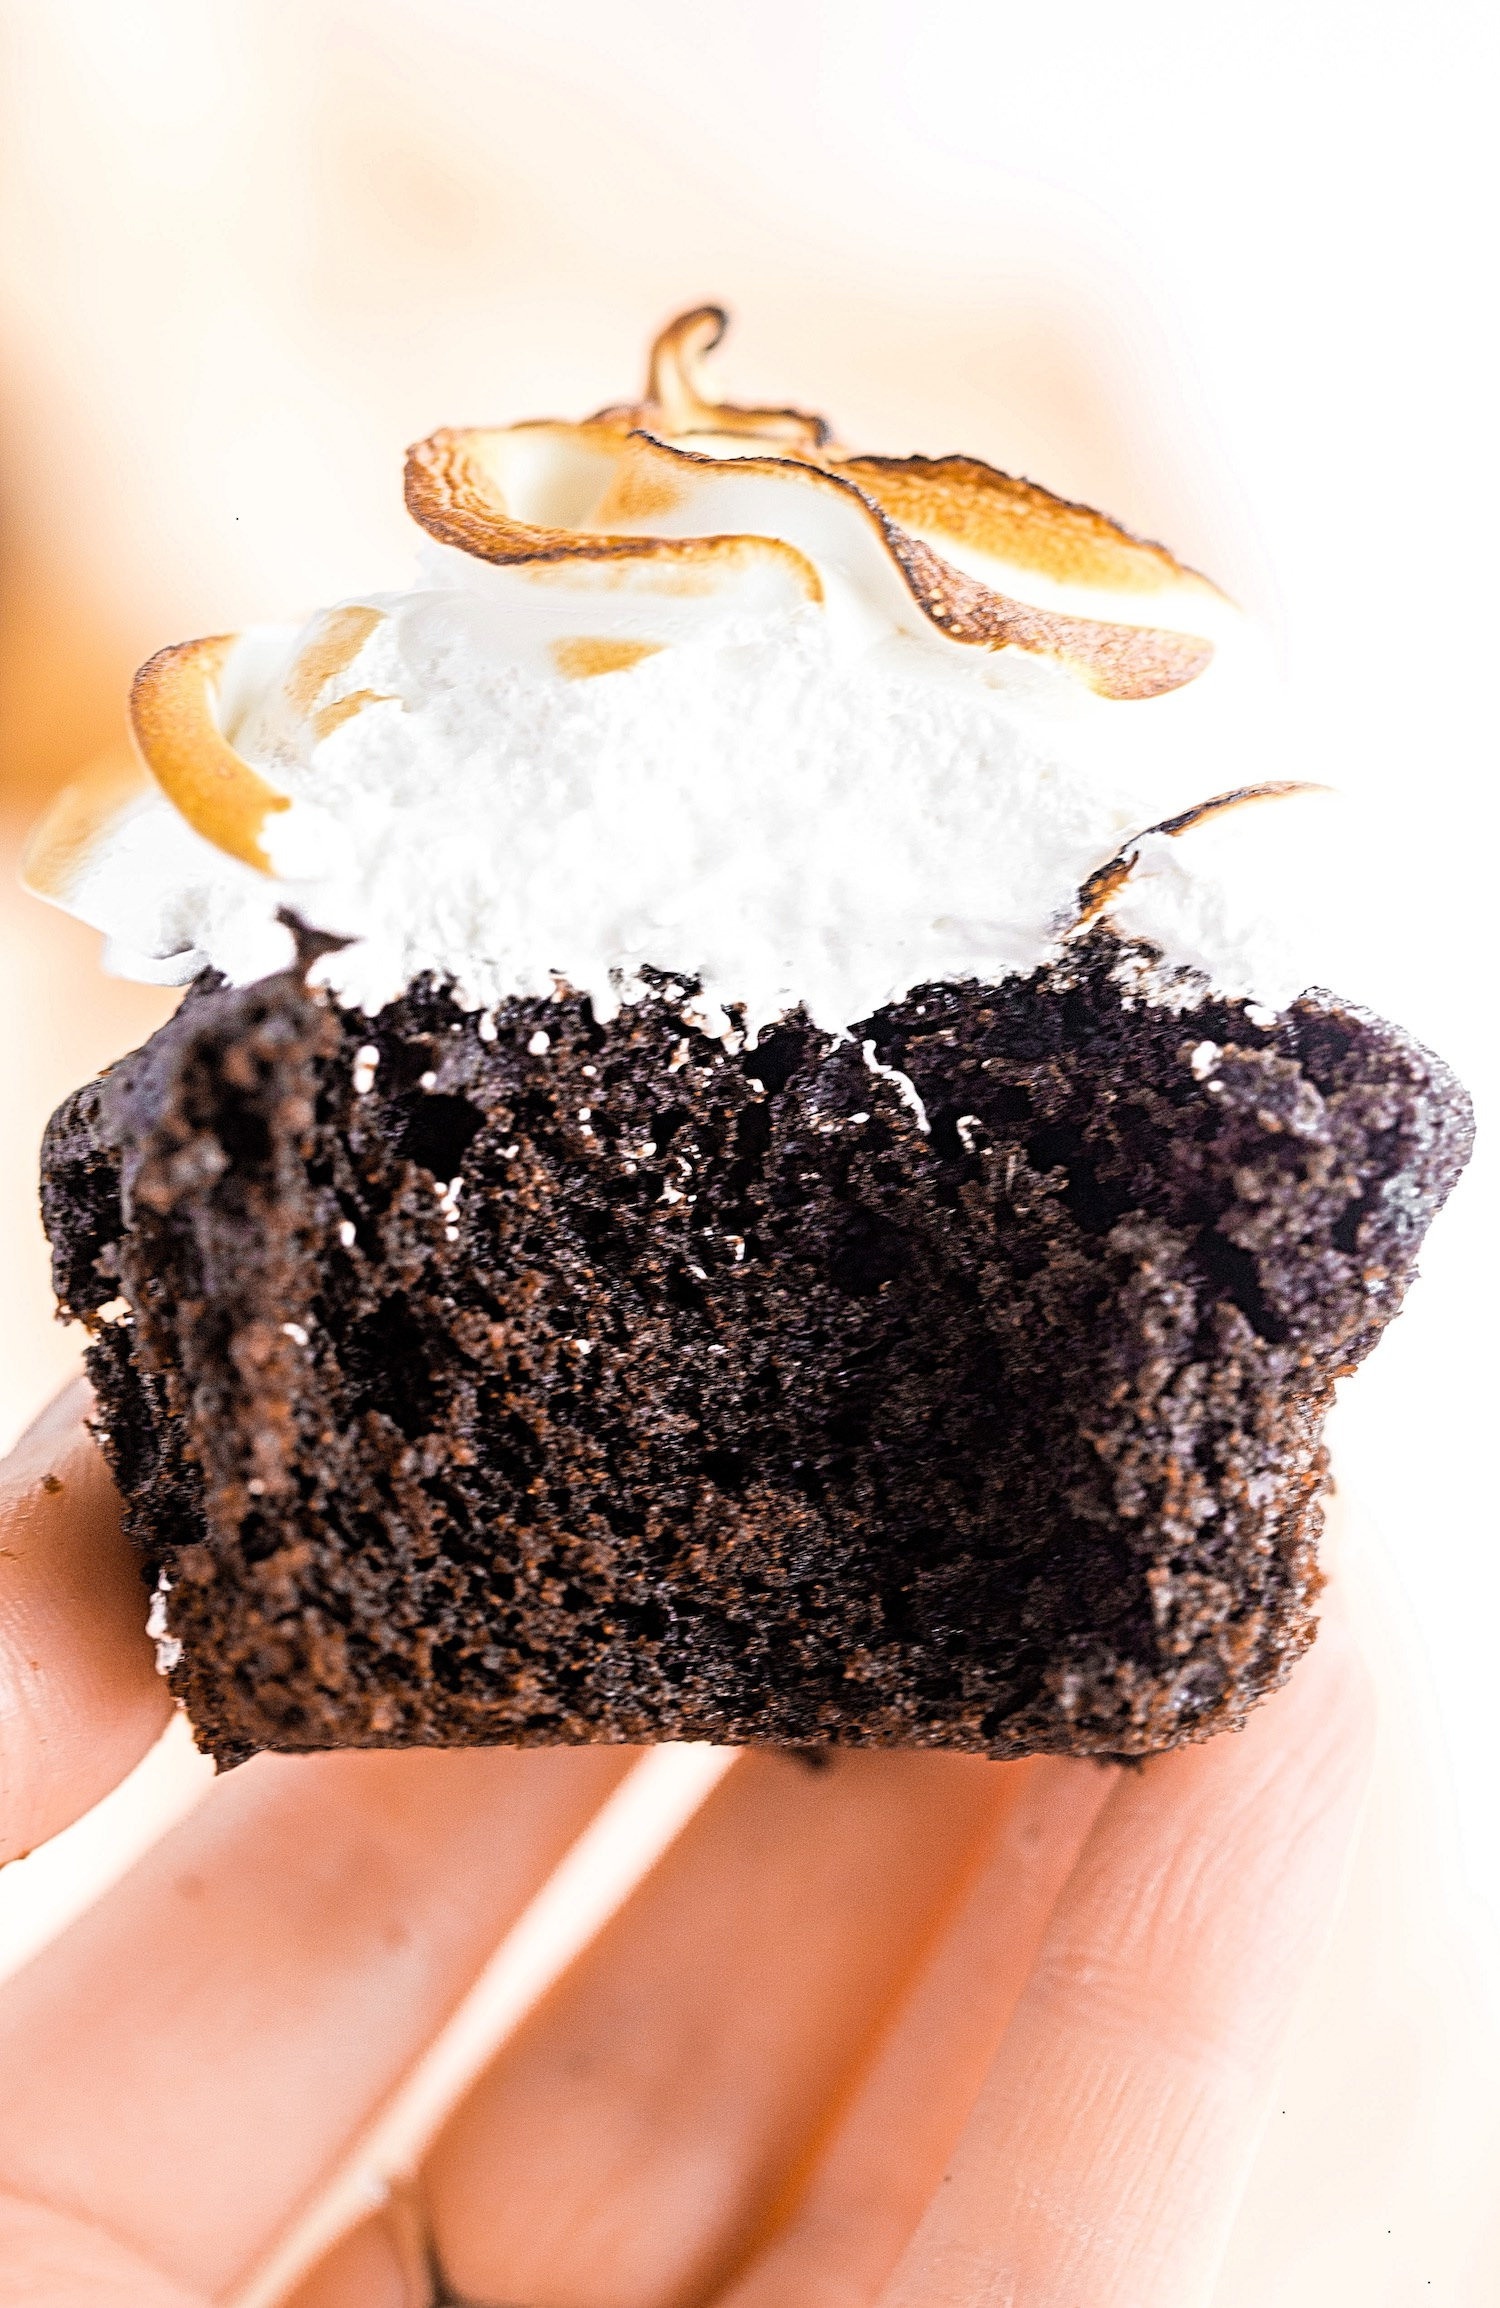 Moist Chocolate Cupcakes with Meringue Frosting: soft and moist, rich and chocolaty, and fluffy and tender chocolate cupcakes with meringue topping. | TrufflesandTrends.com